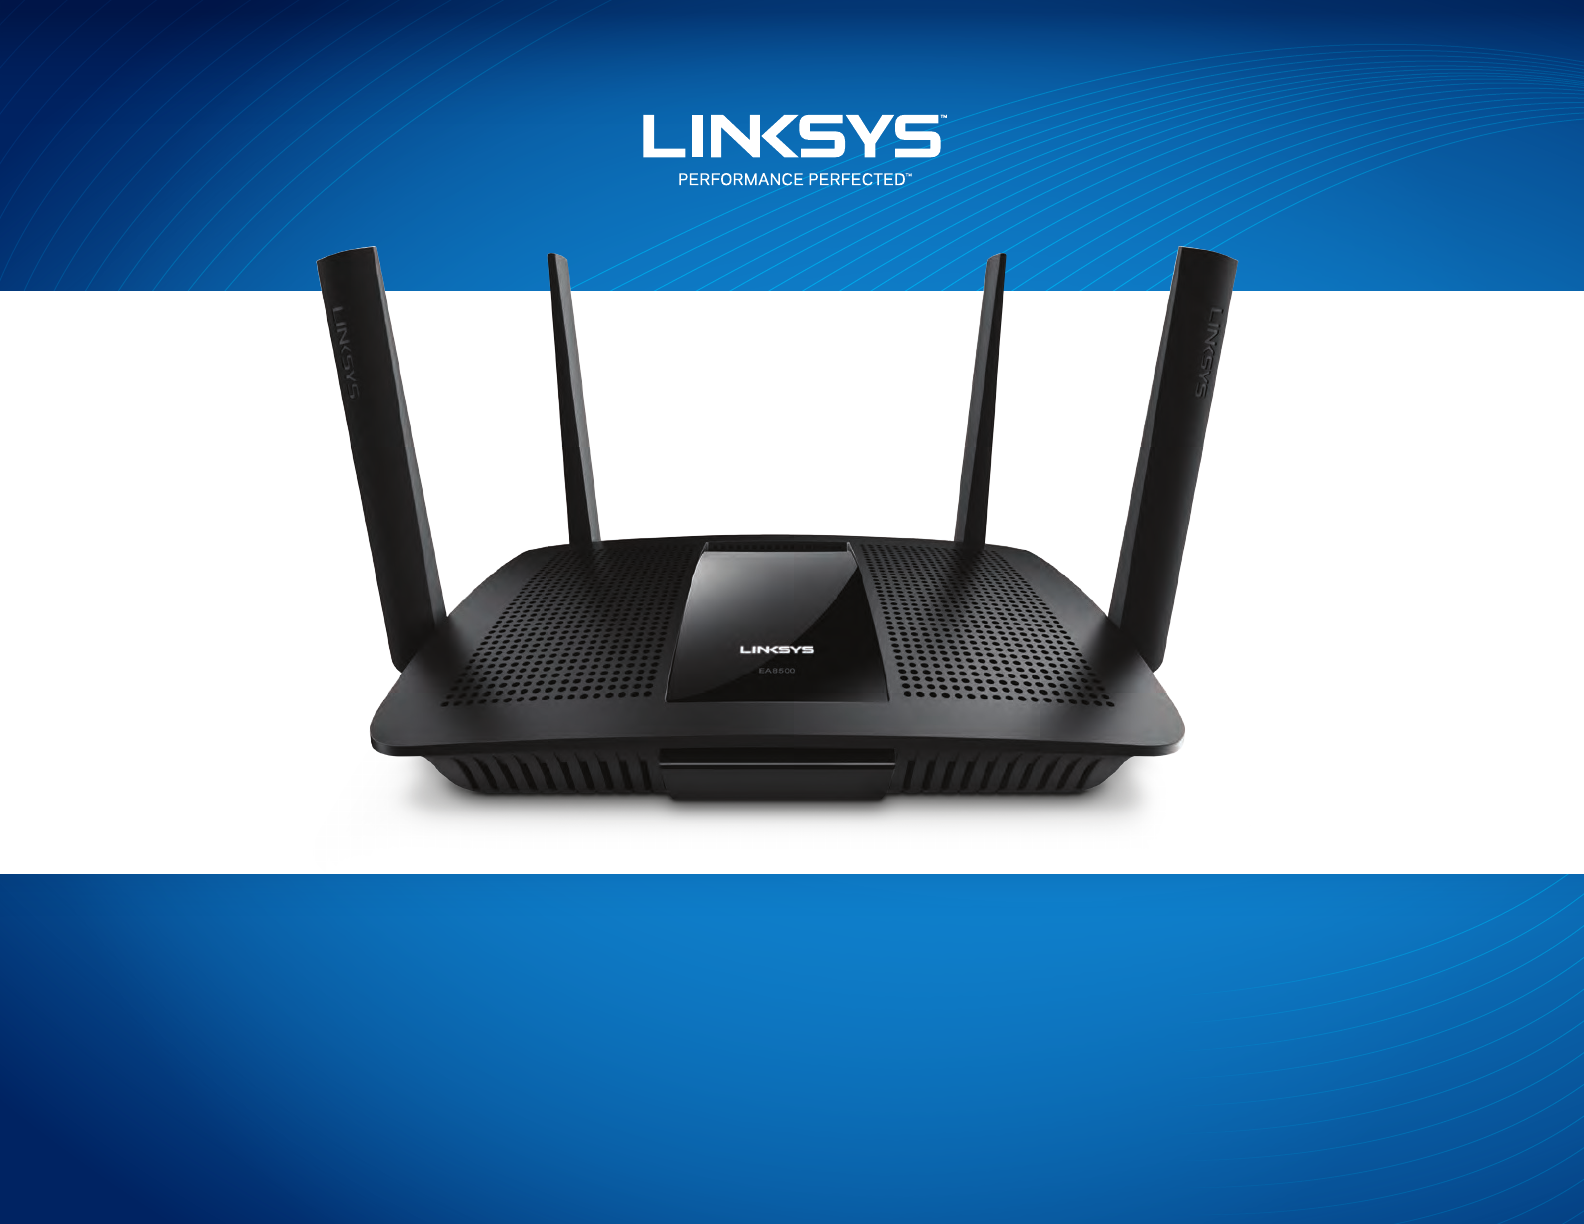 LINKSYS EA8500 LINKSYS DUAL-BAND WIRELESS-AC ROUTER User Manual